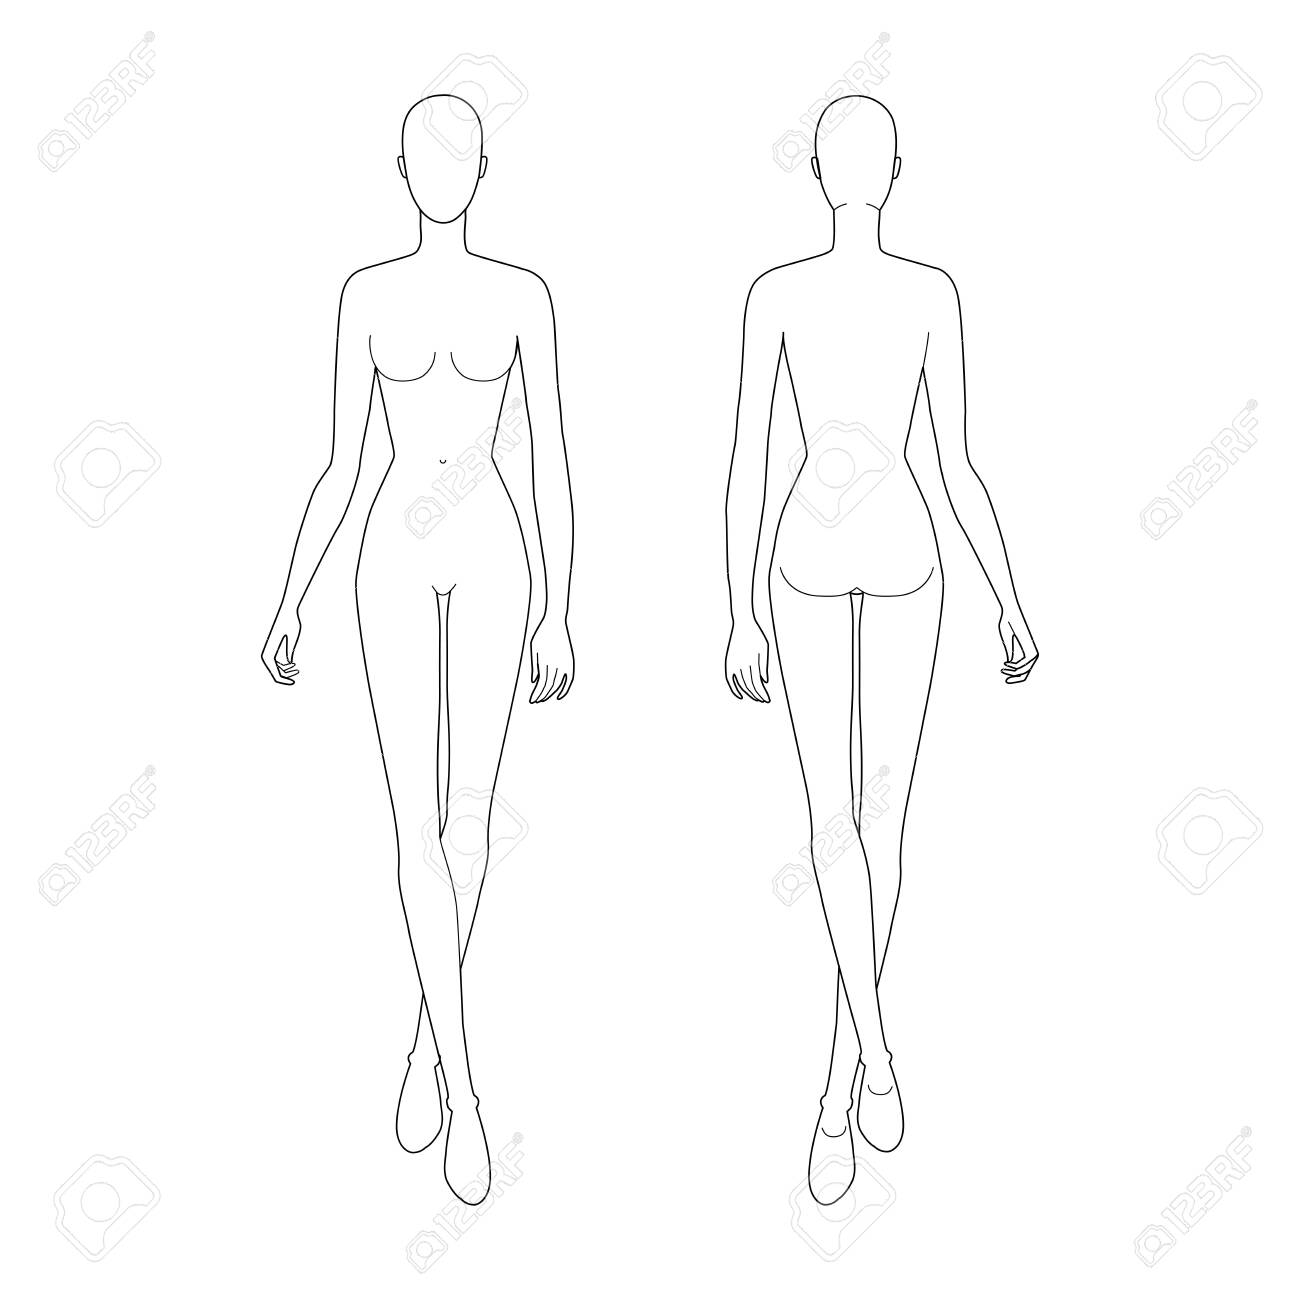 Fashion Template Of Walking Women 9 Head Size For Technical Royalty Free Cliparts Vectors And Stock Illustration Image 142423462